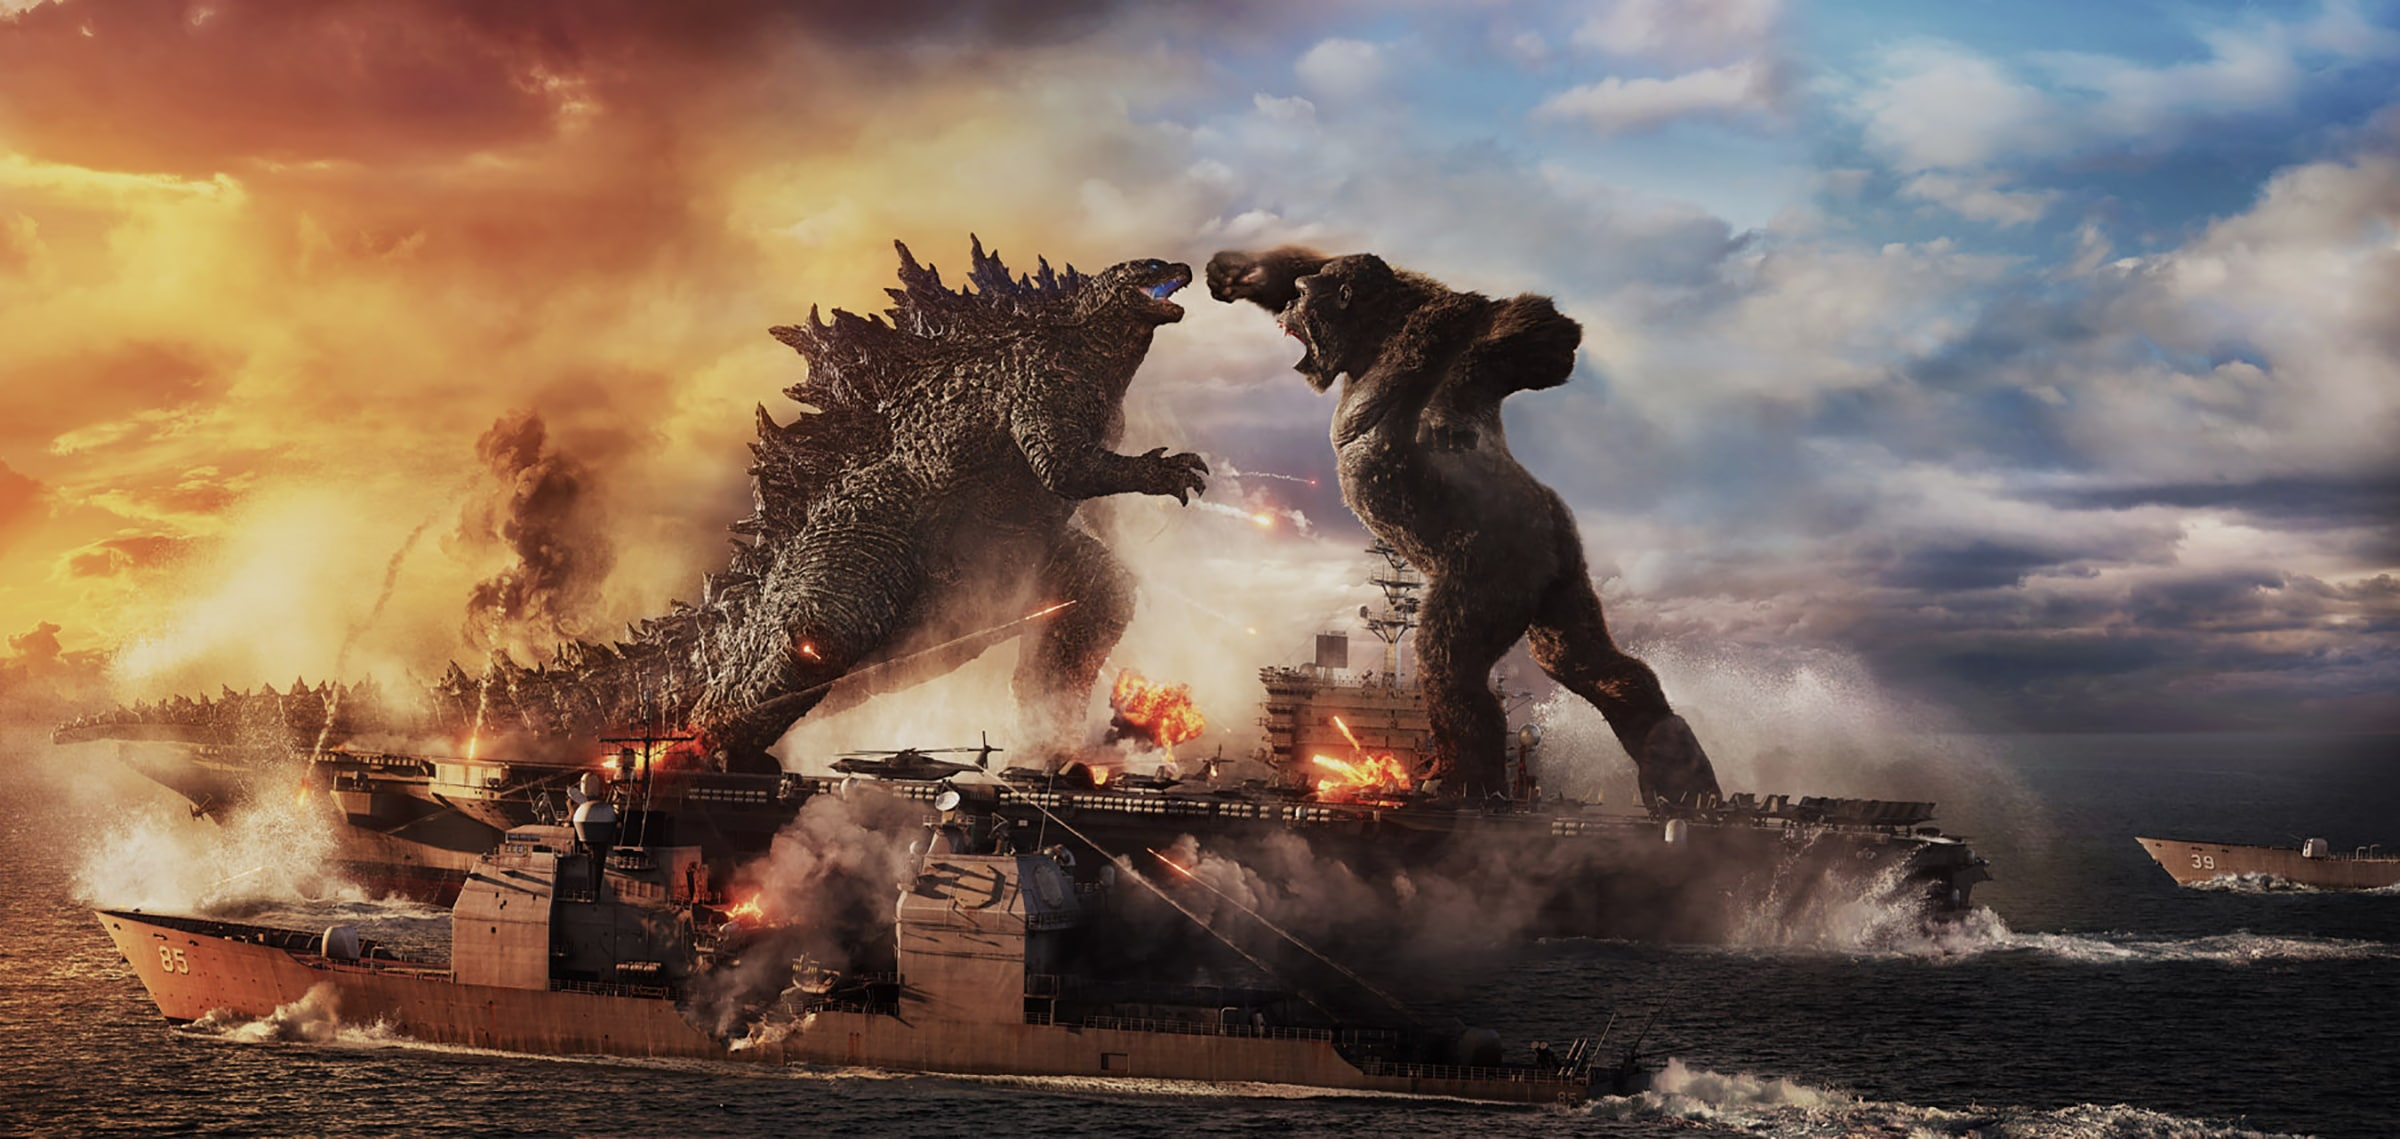 Your First Look At 'Godzilla vs. Kong' Is Finally Here (Trailer)